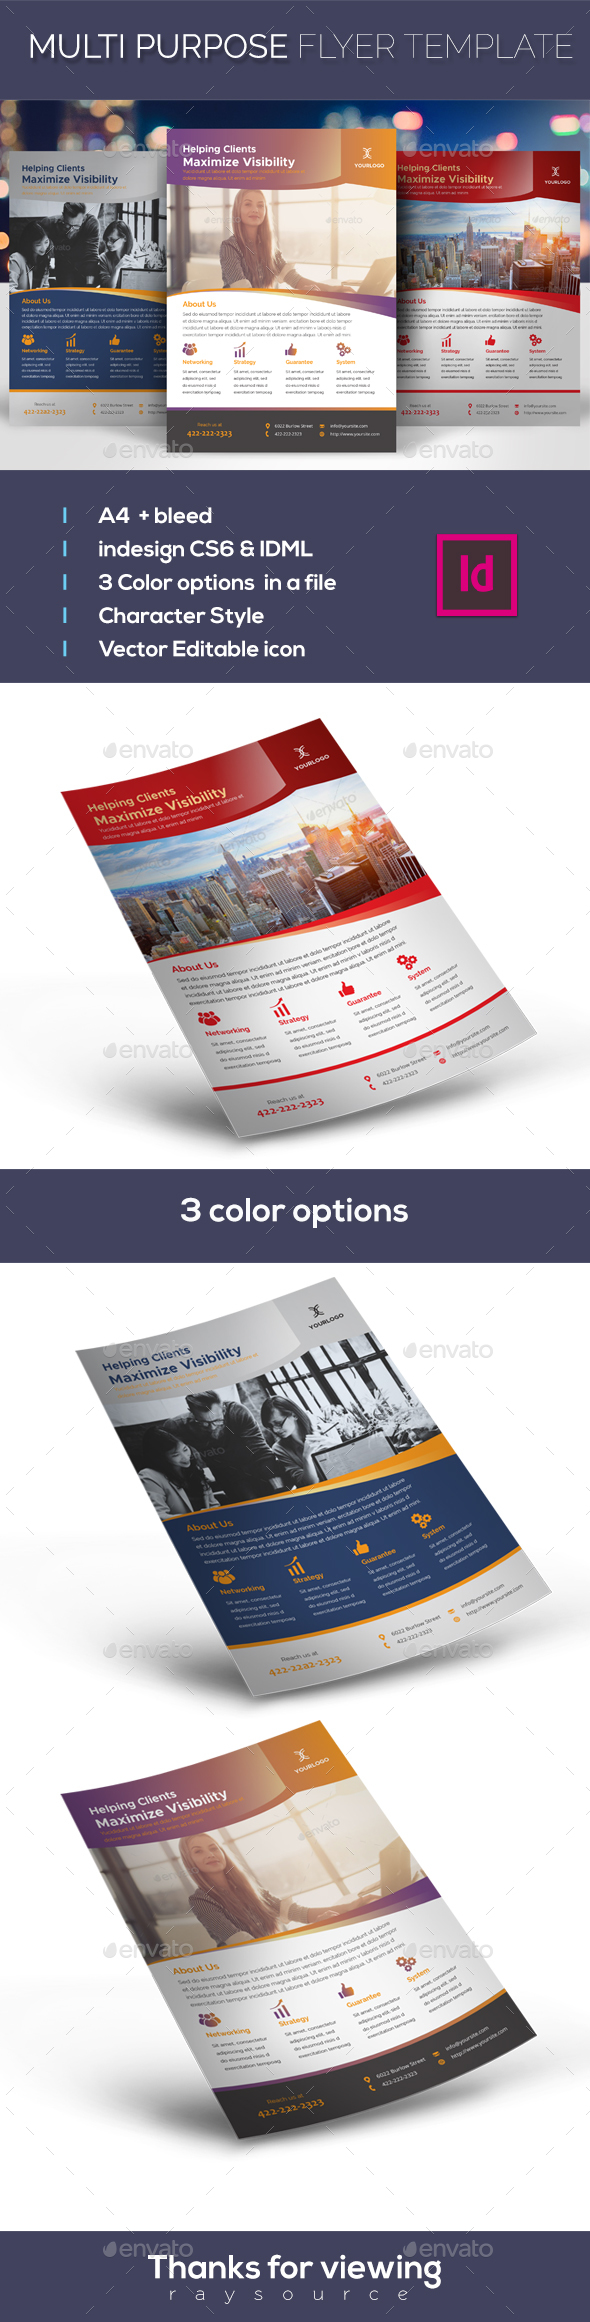 Multi Purpose Flyer - Corporate Flyers